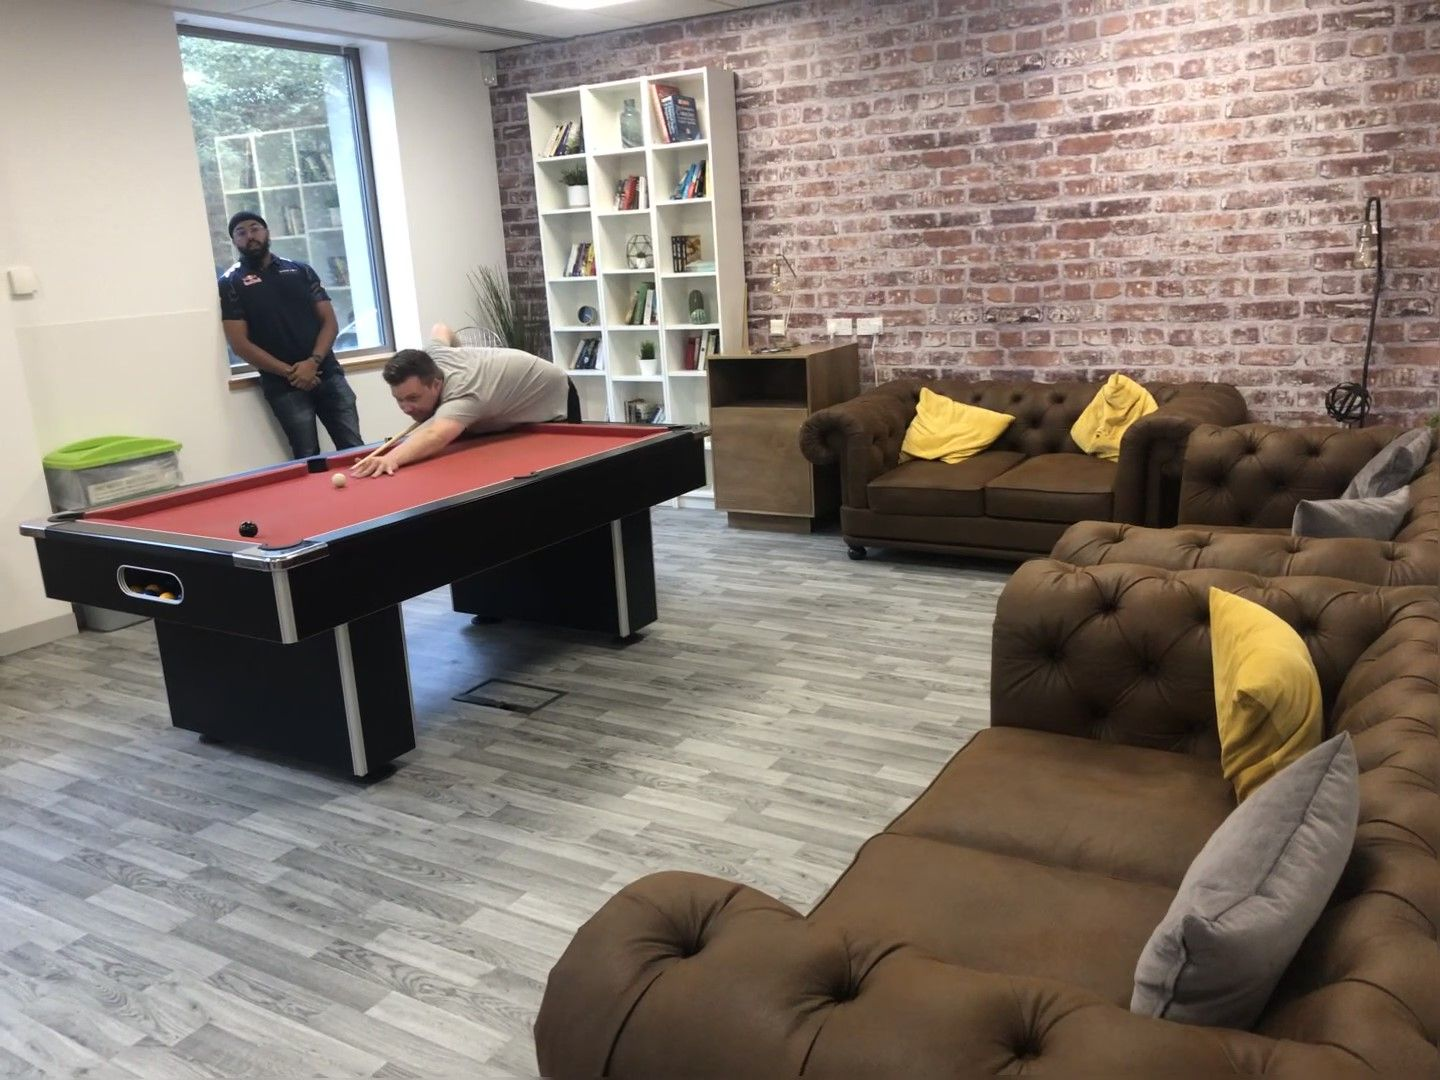 Here's a photo of the comfy new sofa area!